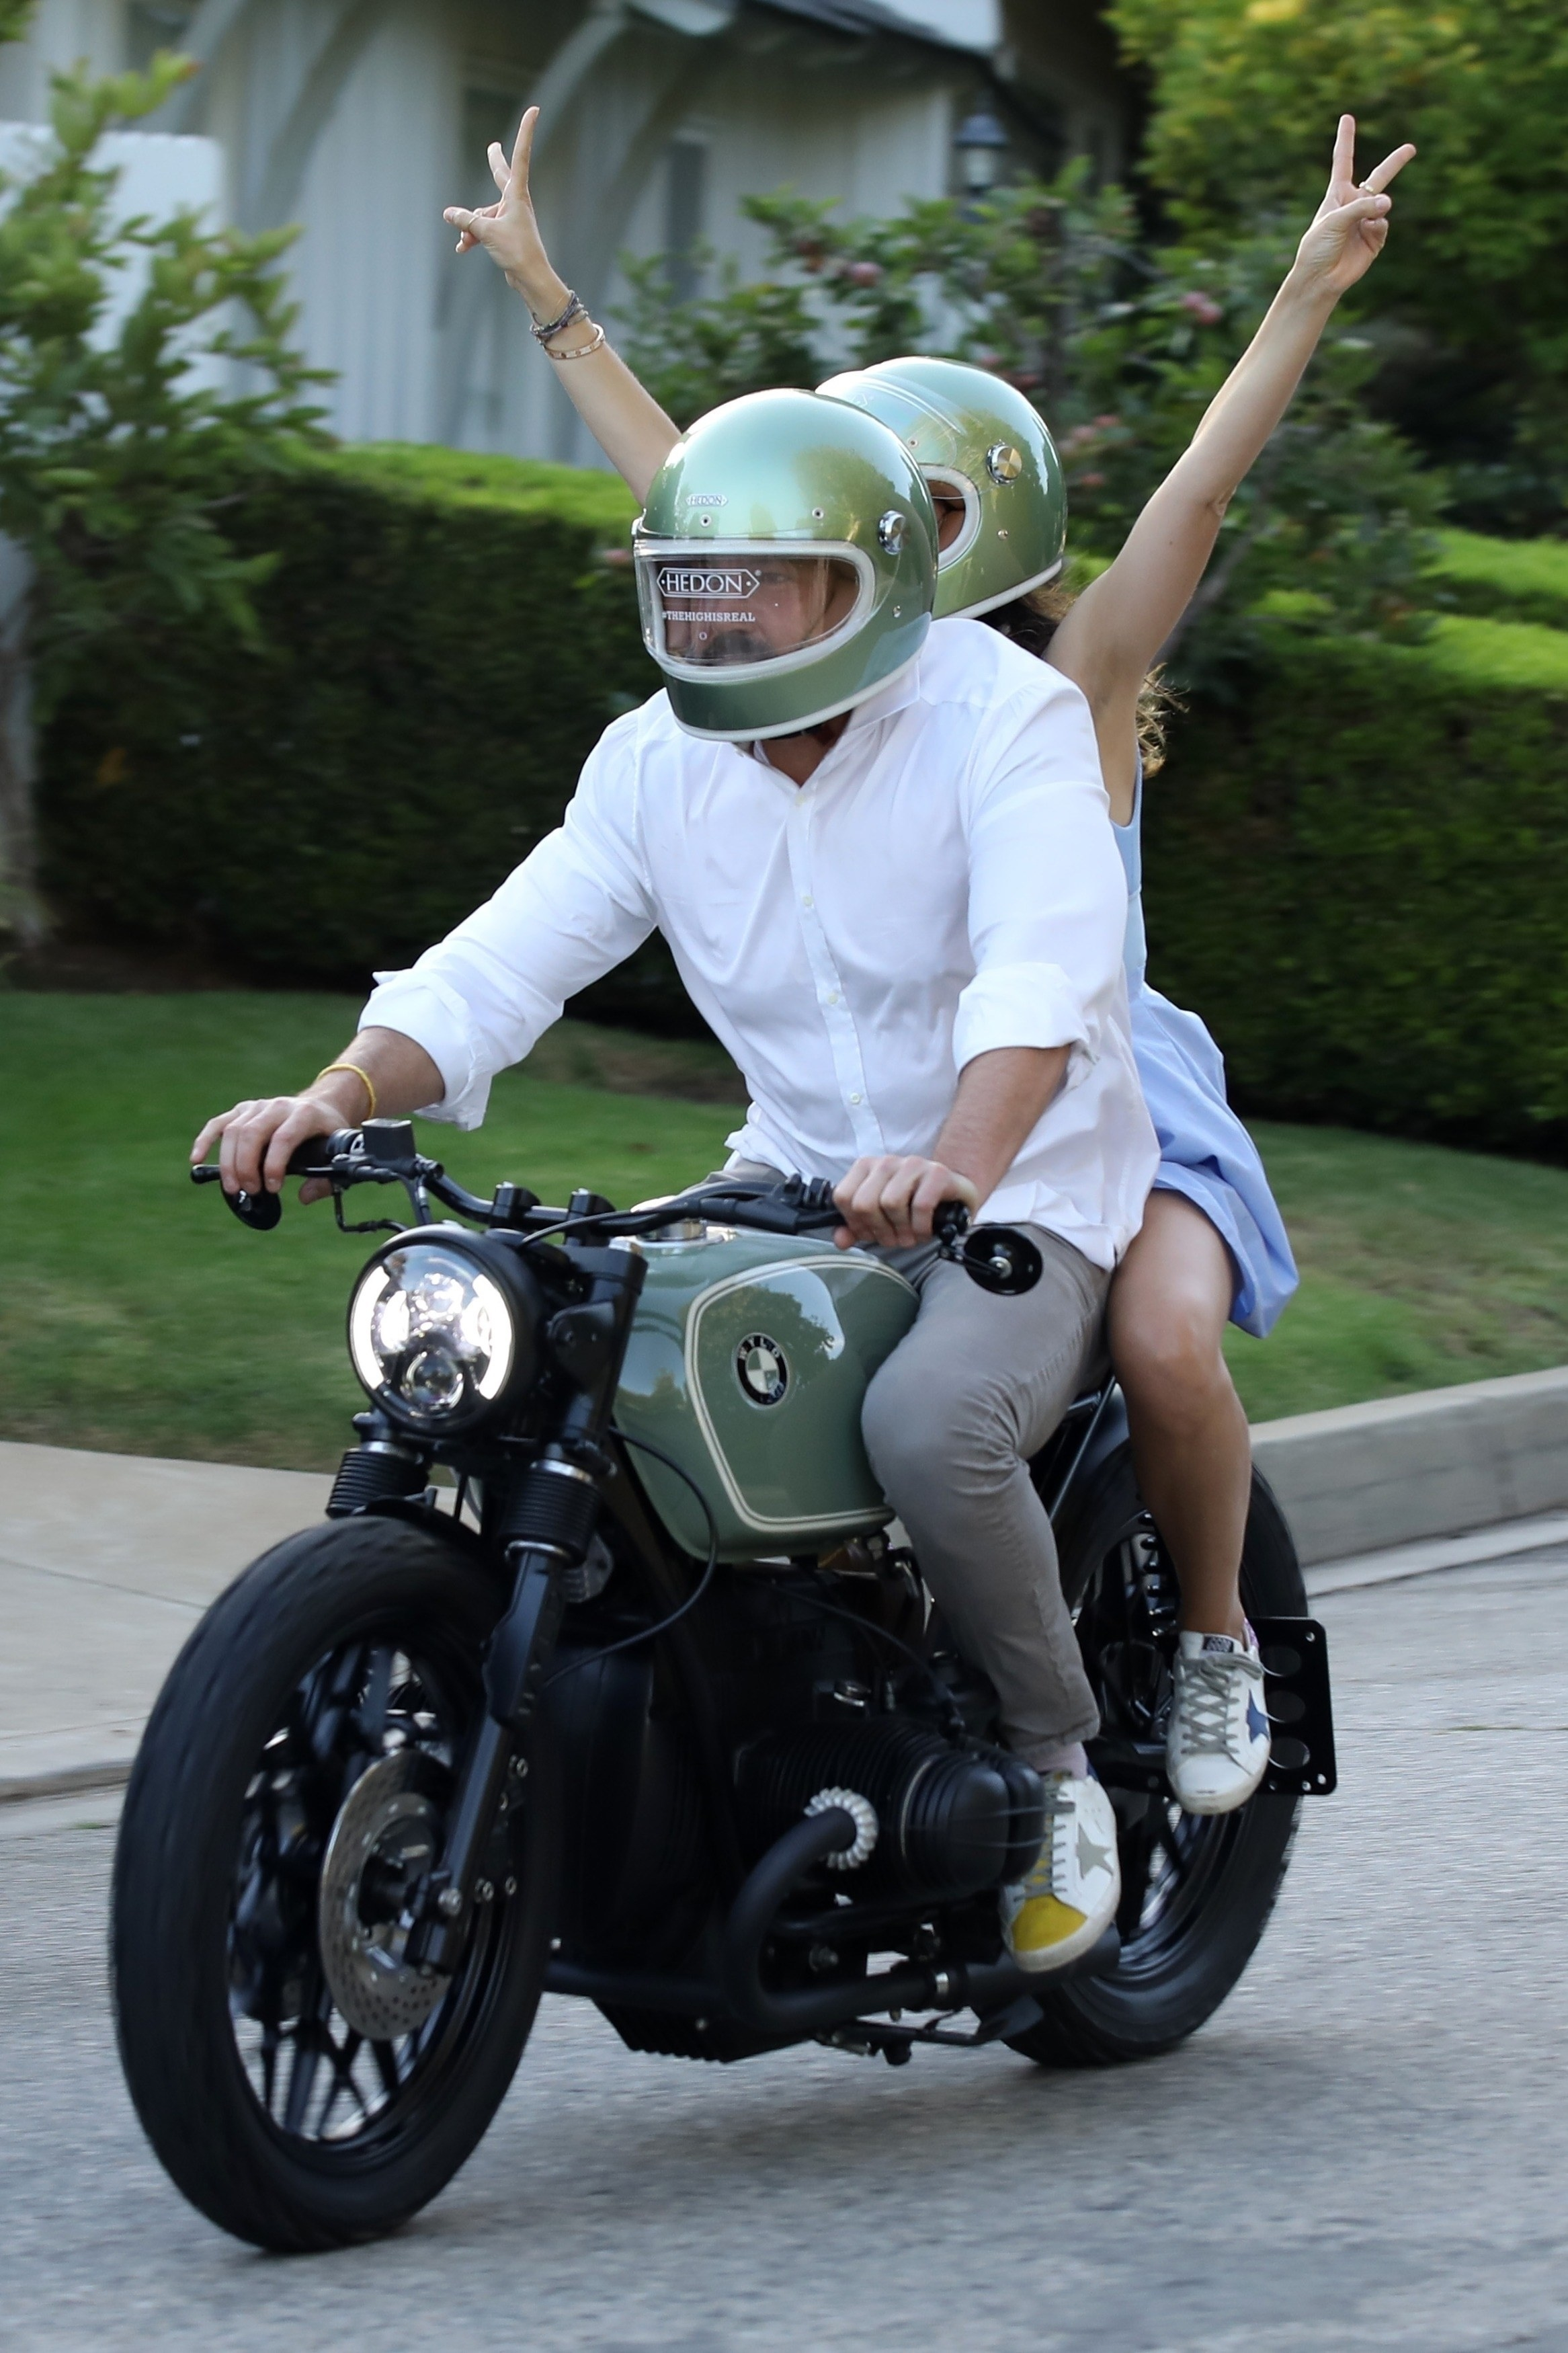 Ben Affleck and Ana de Armas riding a motorcycle as Ana holds both of her arms in the air and throwing the peace sign